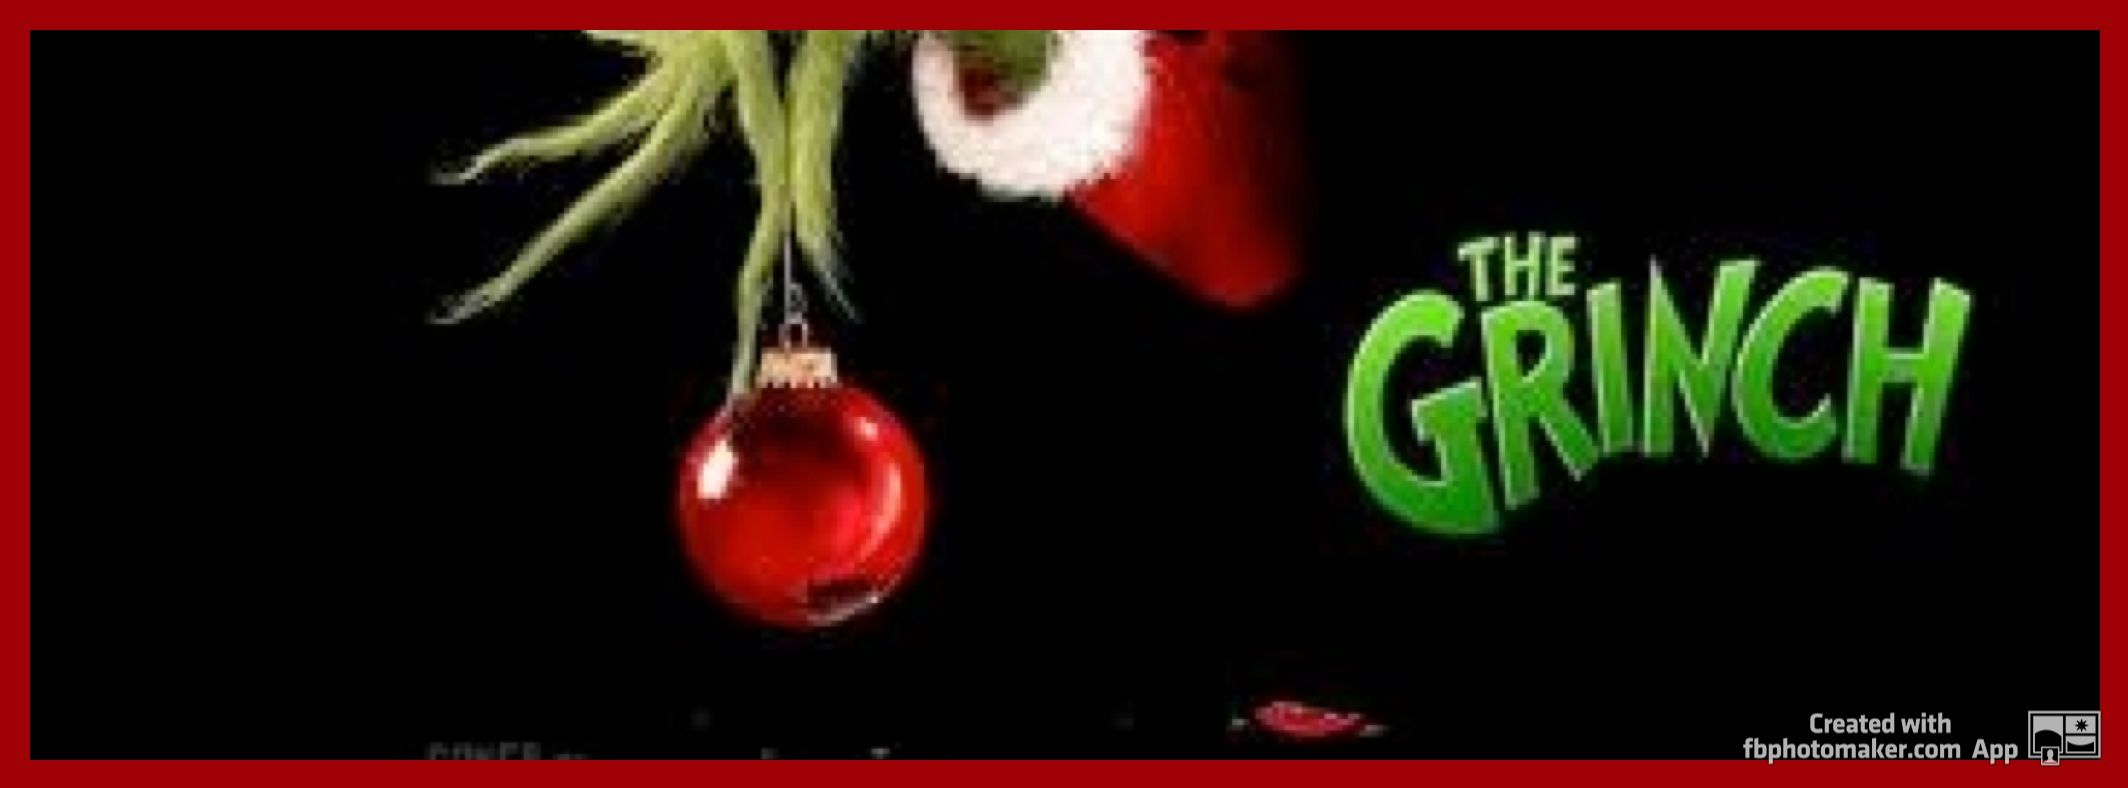 The Grinch Christmas Simple Facebook Timeline Cover Photo Cover Pics For Facebook Best Facebook Cover Photos Free Facebook Cover Photos